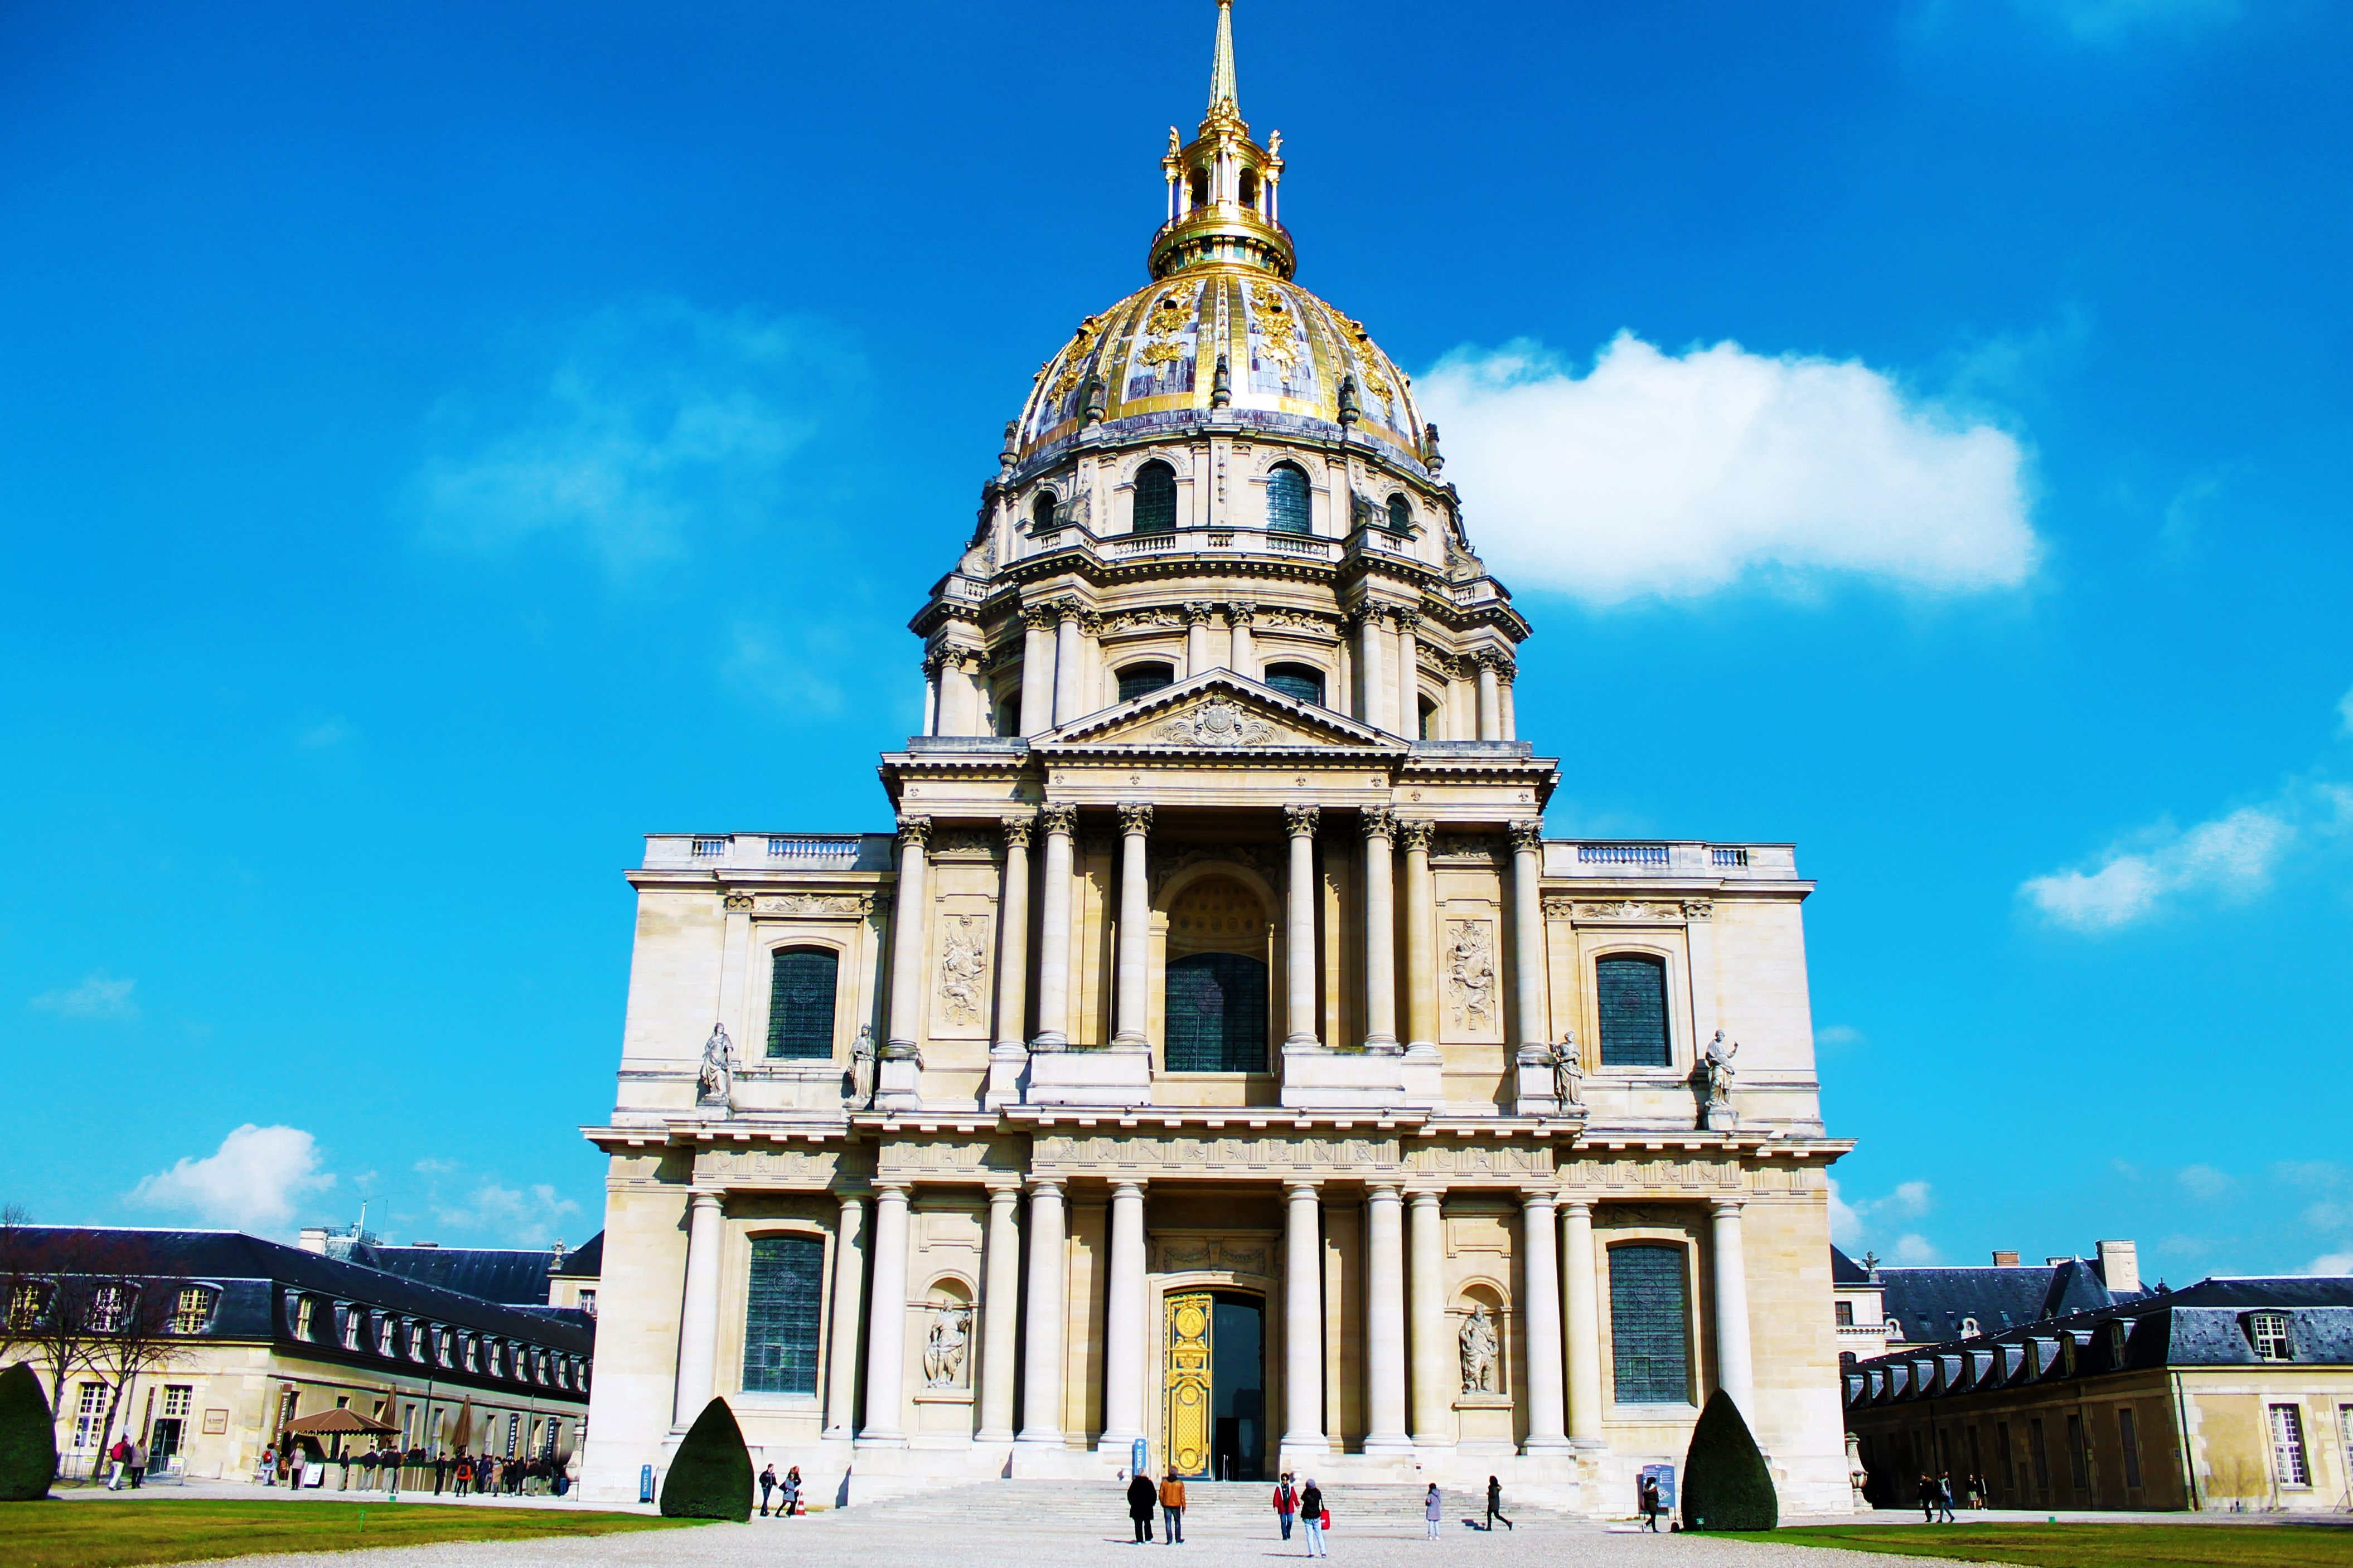 Visita ao Hôtel National des Invalides Paris